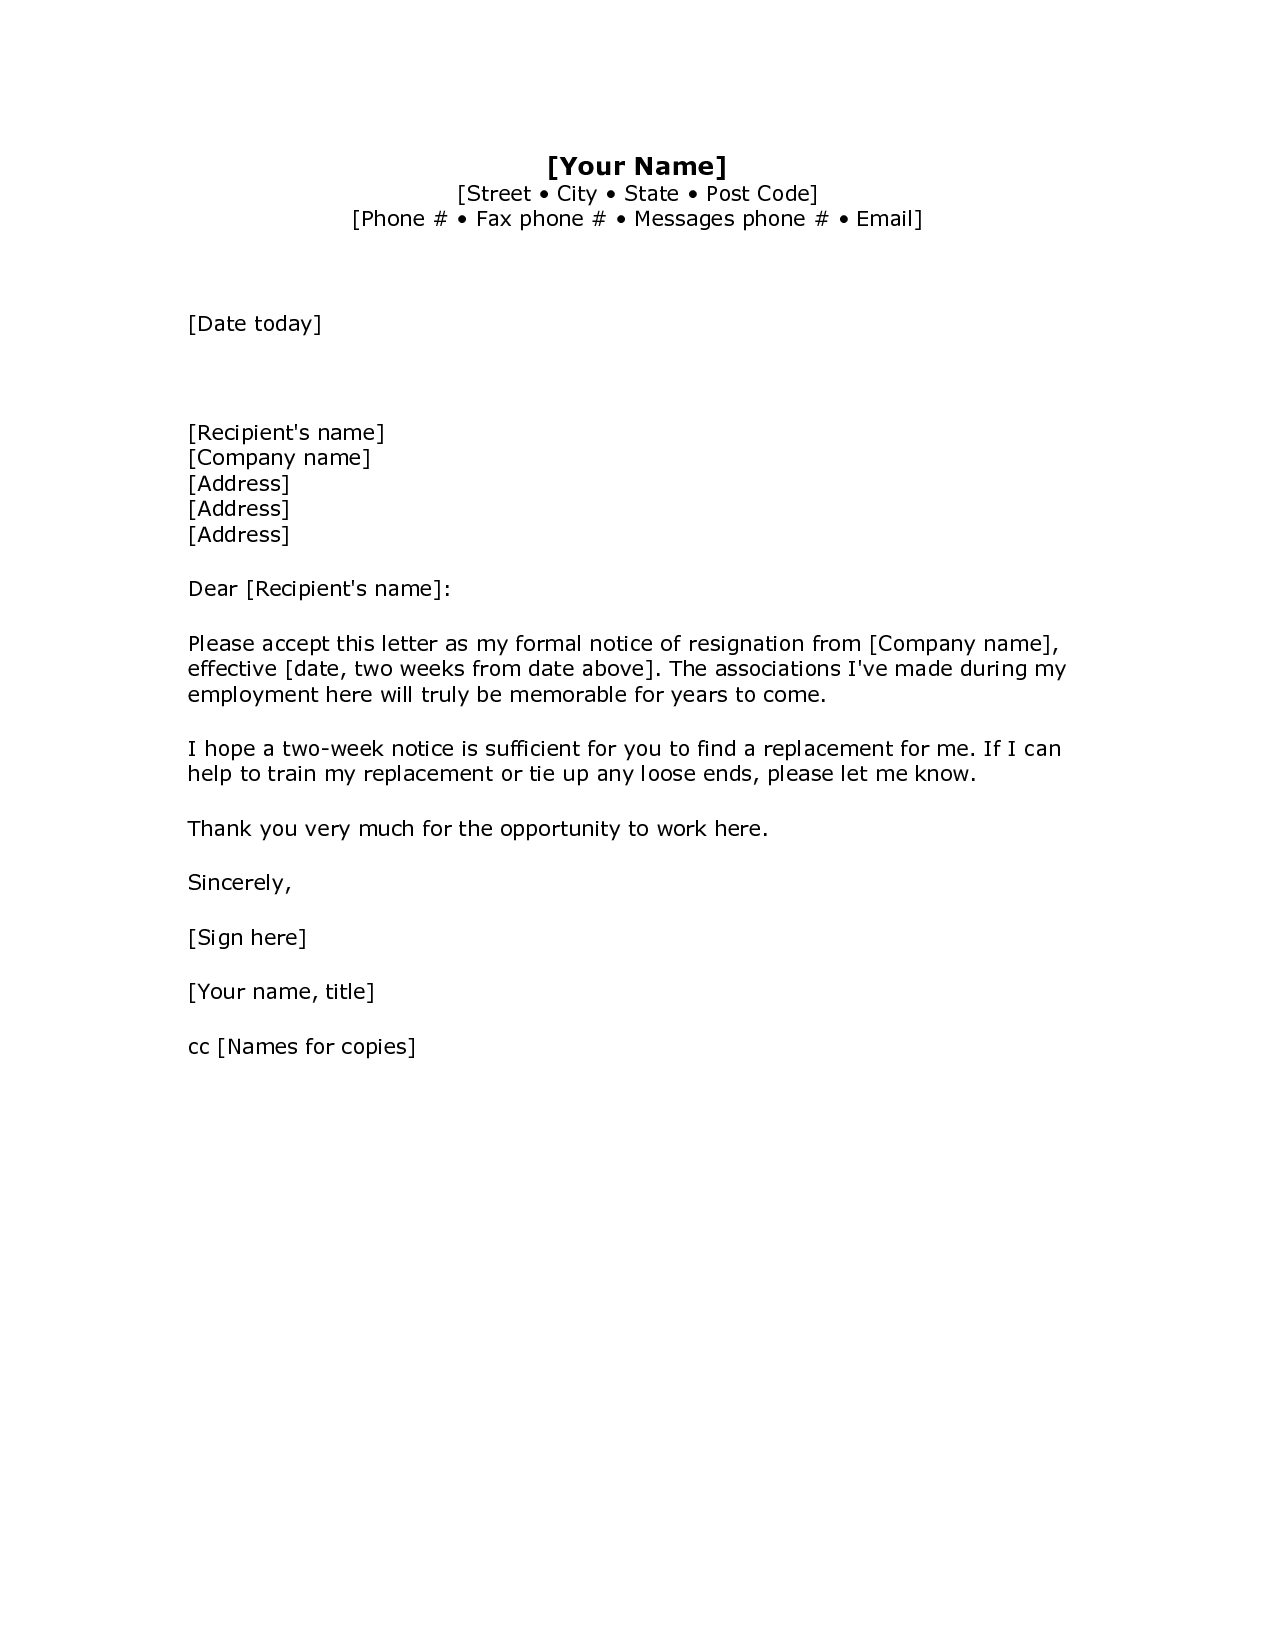 appointment reminder letter template example-2 Weeks Notice Letter Resignation Letter Week Notice Words HDWriting A Letter Resignation Email Letter Sample 17-p